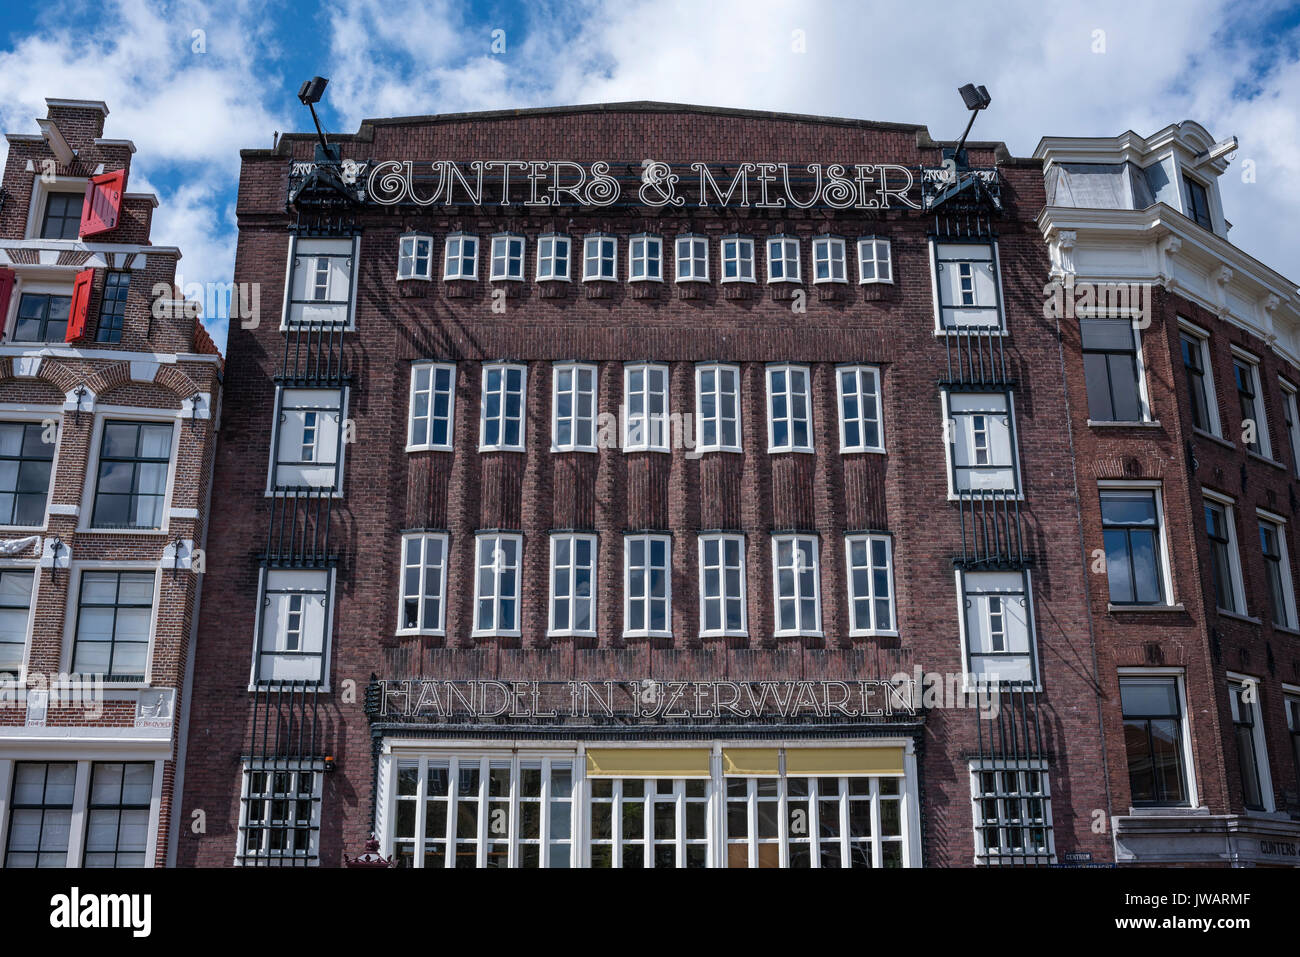 Historic canal house at Prinsengracht, Amsterdam, North Holland, Netherlands - Stock Image